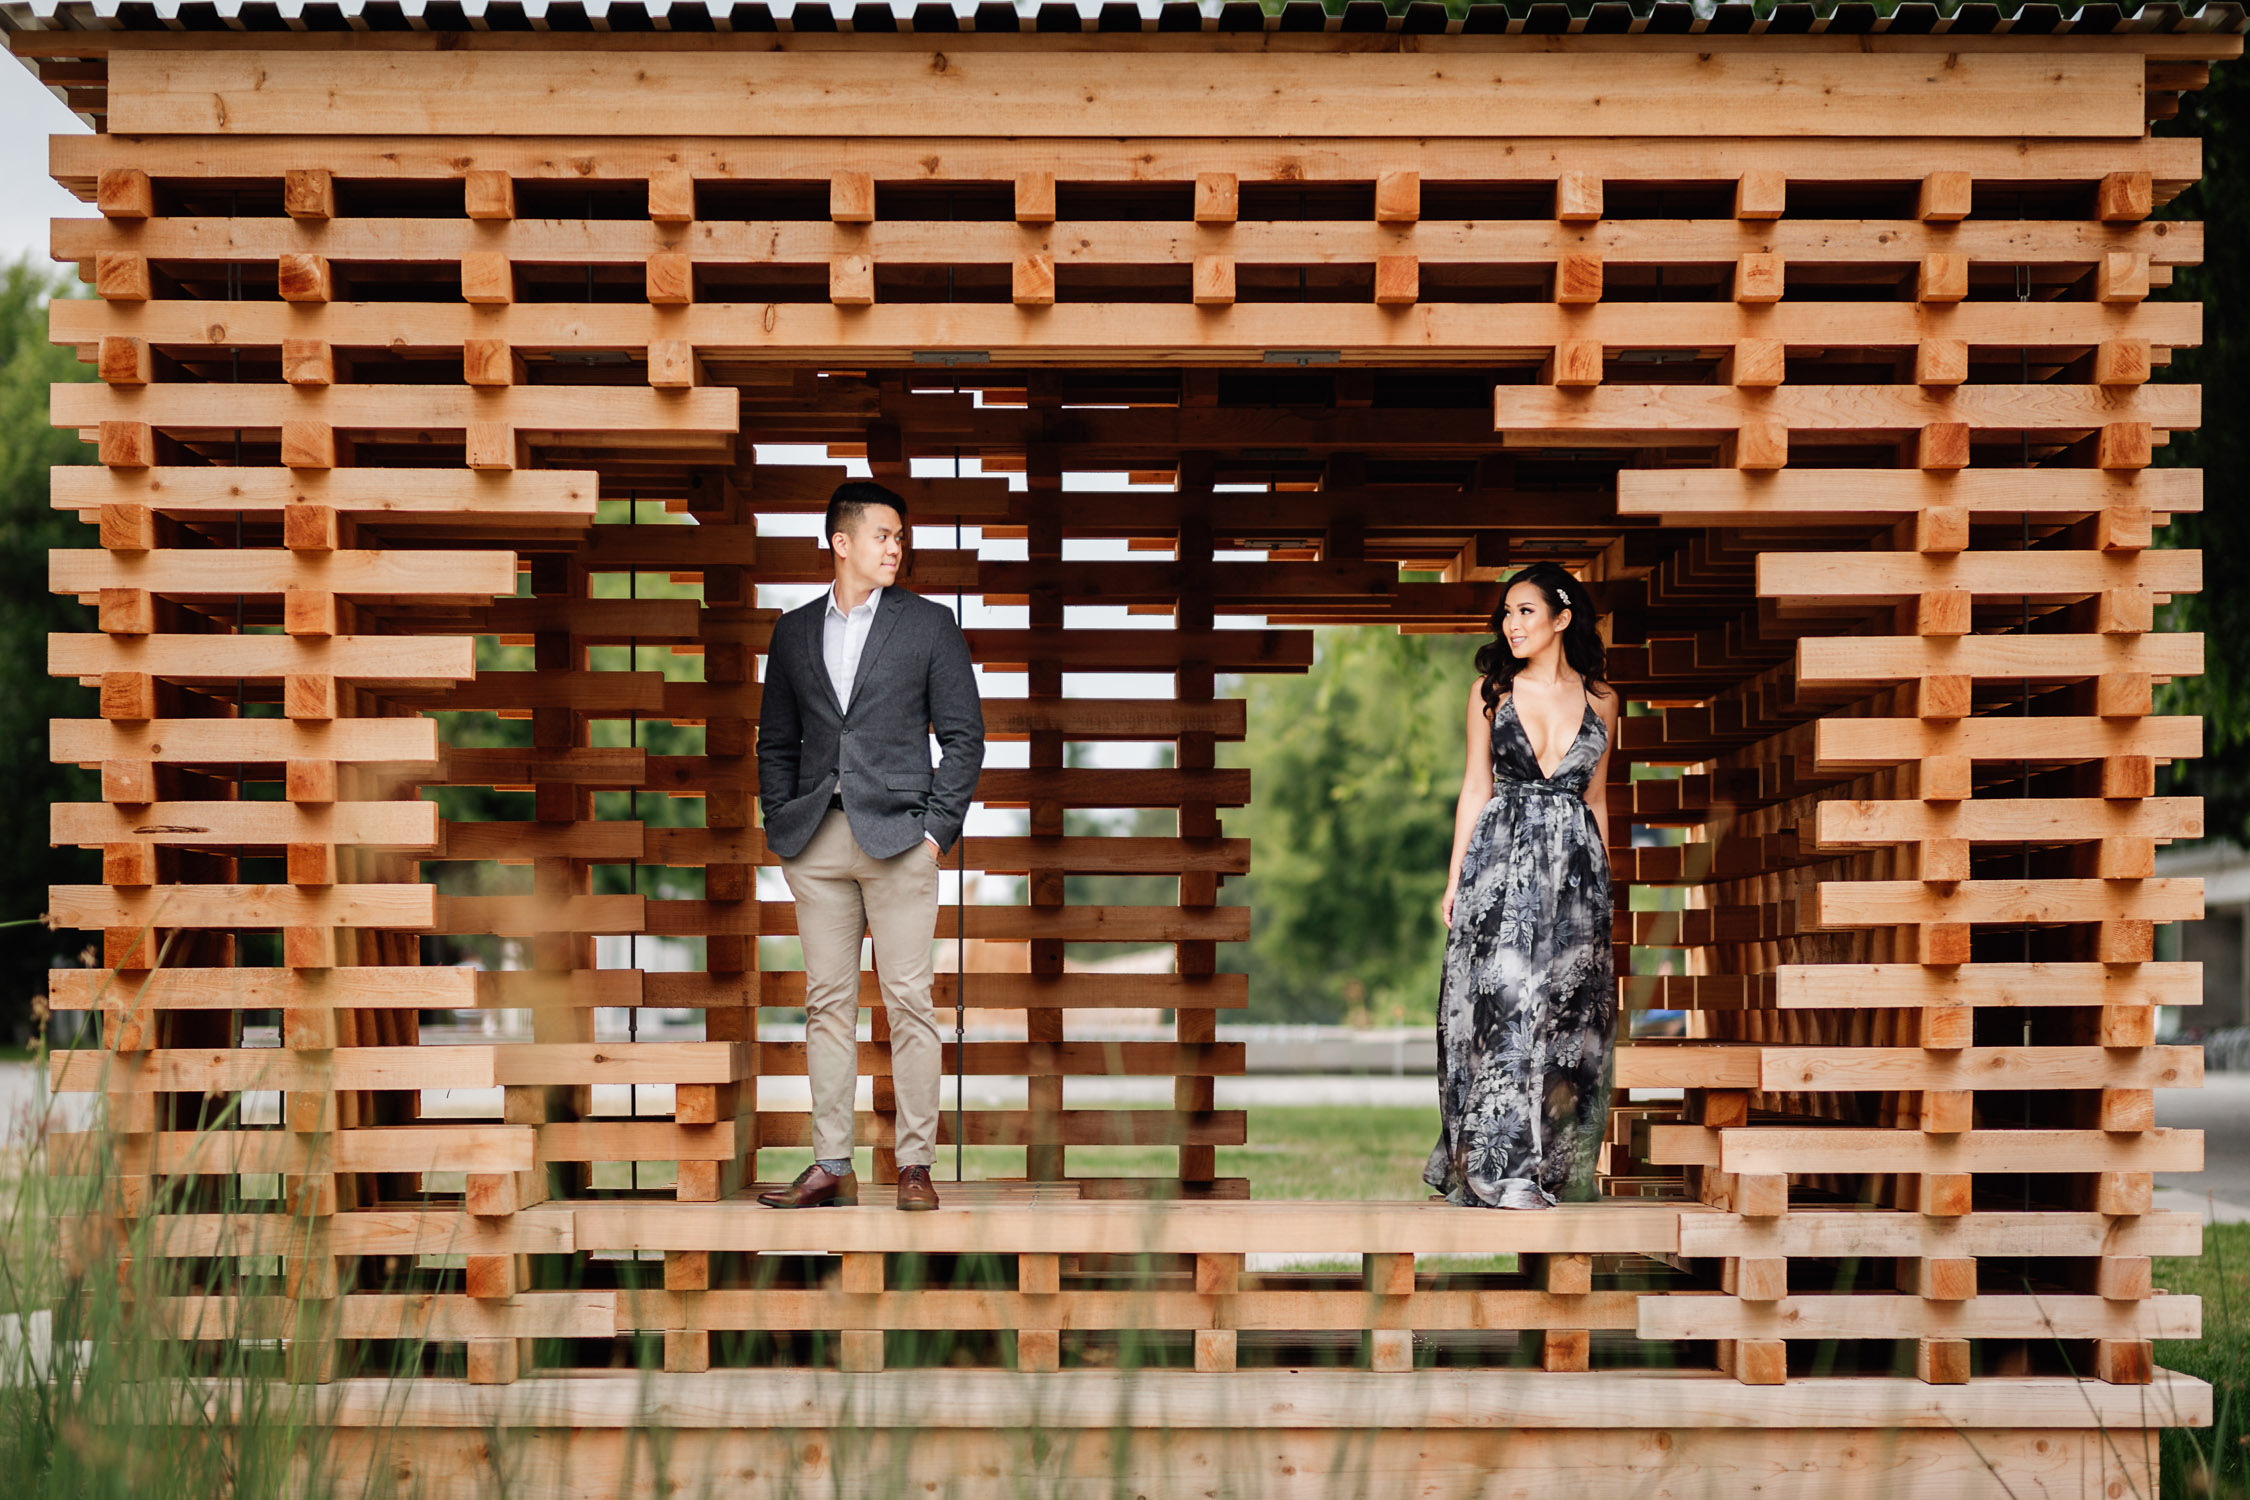 ubc engagement photography during summer in vancouver bc